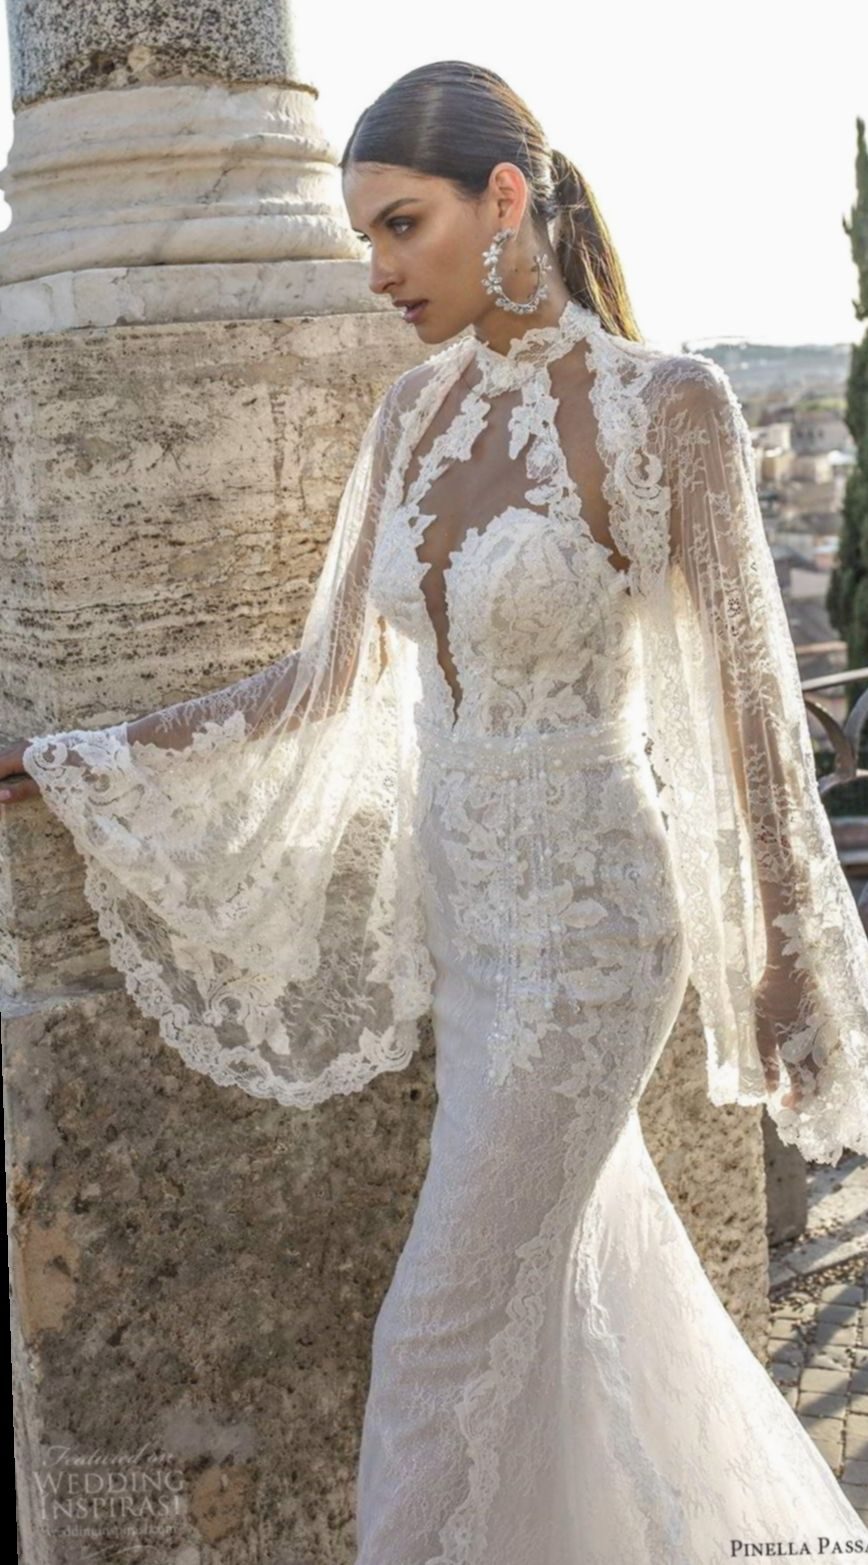 ✔ Fashion Dresses Wedding Lace Sleeves #fitness #uae #bollywood